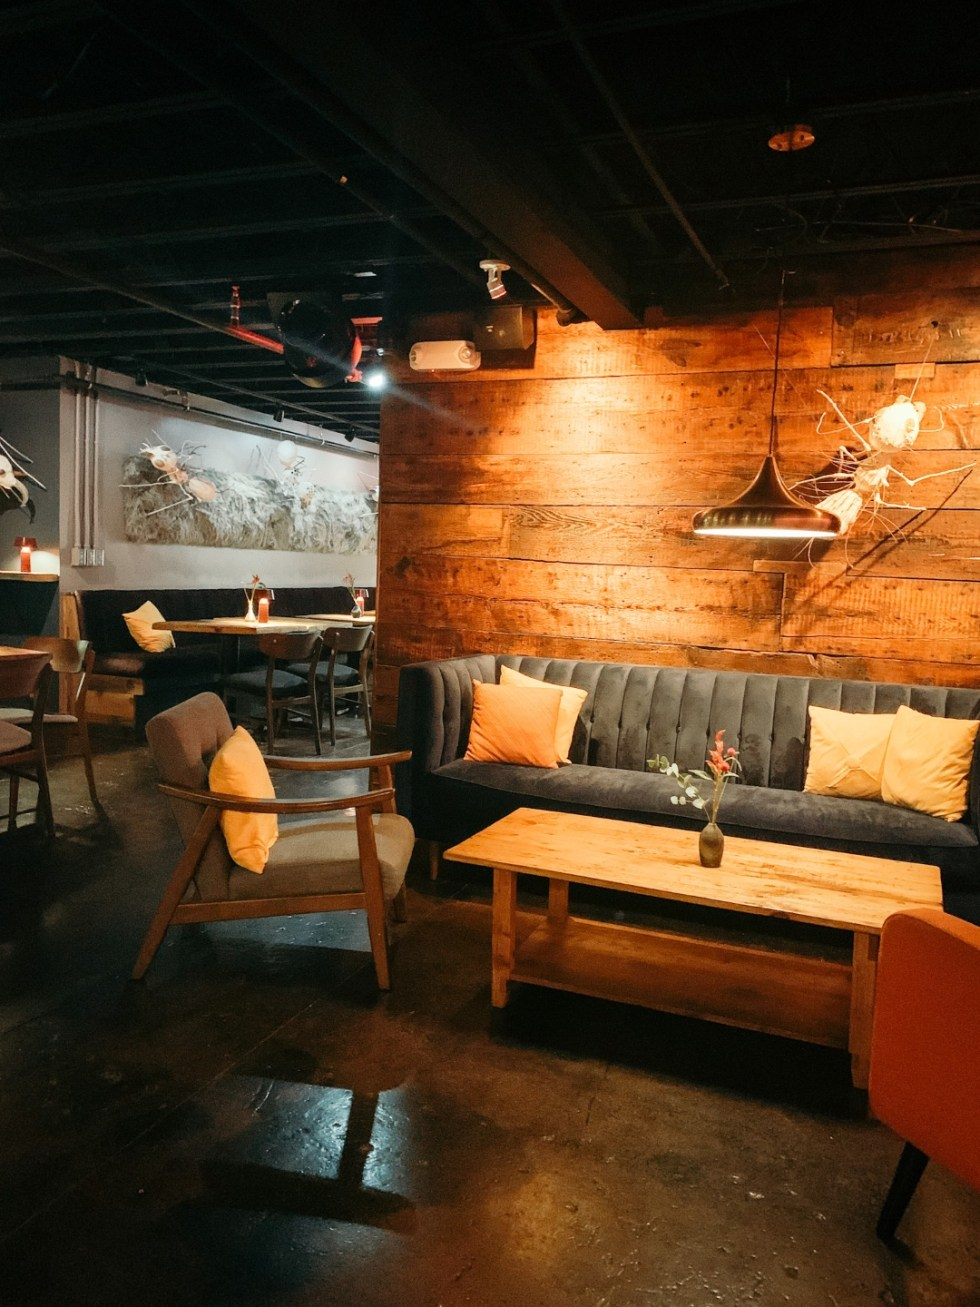 23 Awesome Things To Do in Durham - I'm Fixin' To - @imfixintoblog | Things to do in Durham by popular NC travel blog, I'm Fixin' To: image of sitting area with a velvet couch, rectangular wooden coffee table, and mid century modern armchairs.